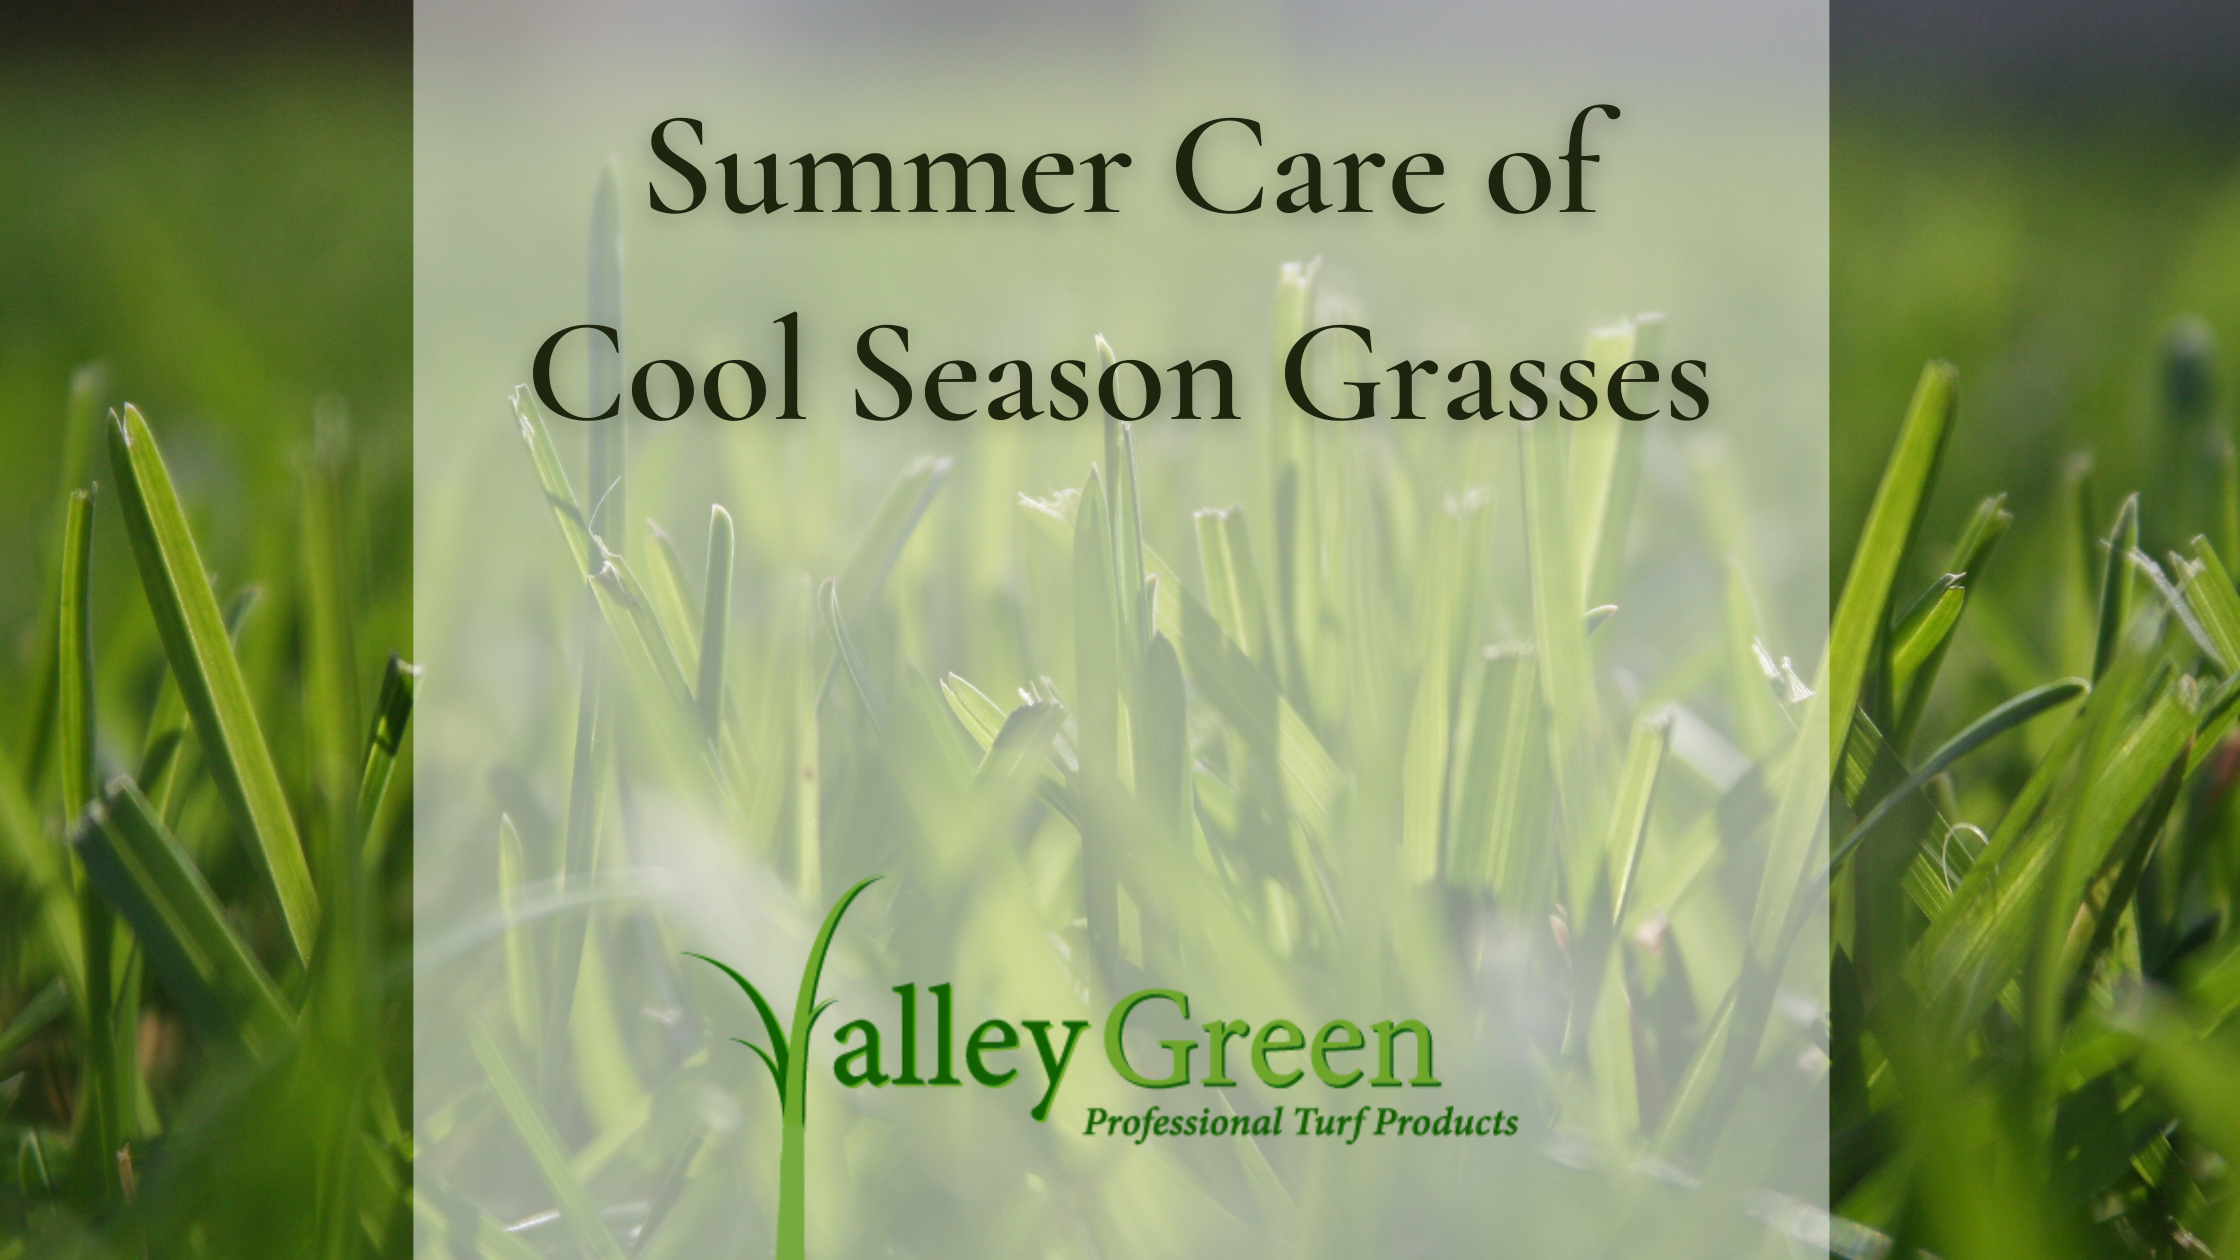 Summer Care of Cool Season Grasses